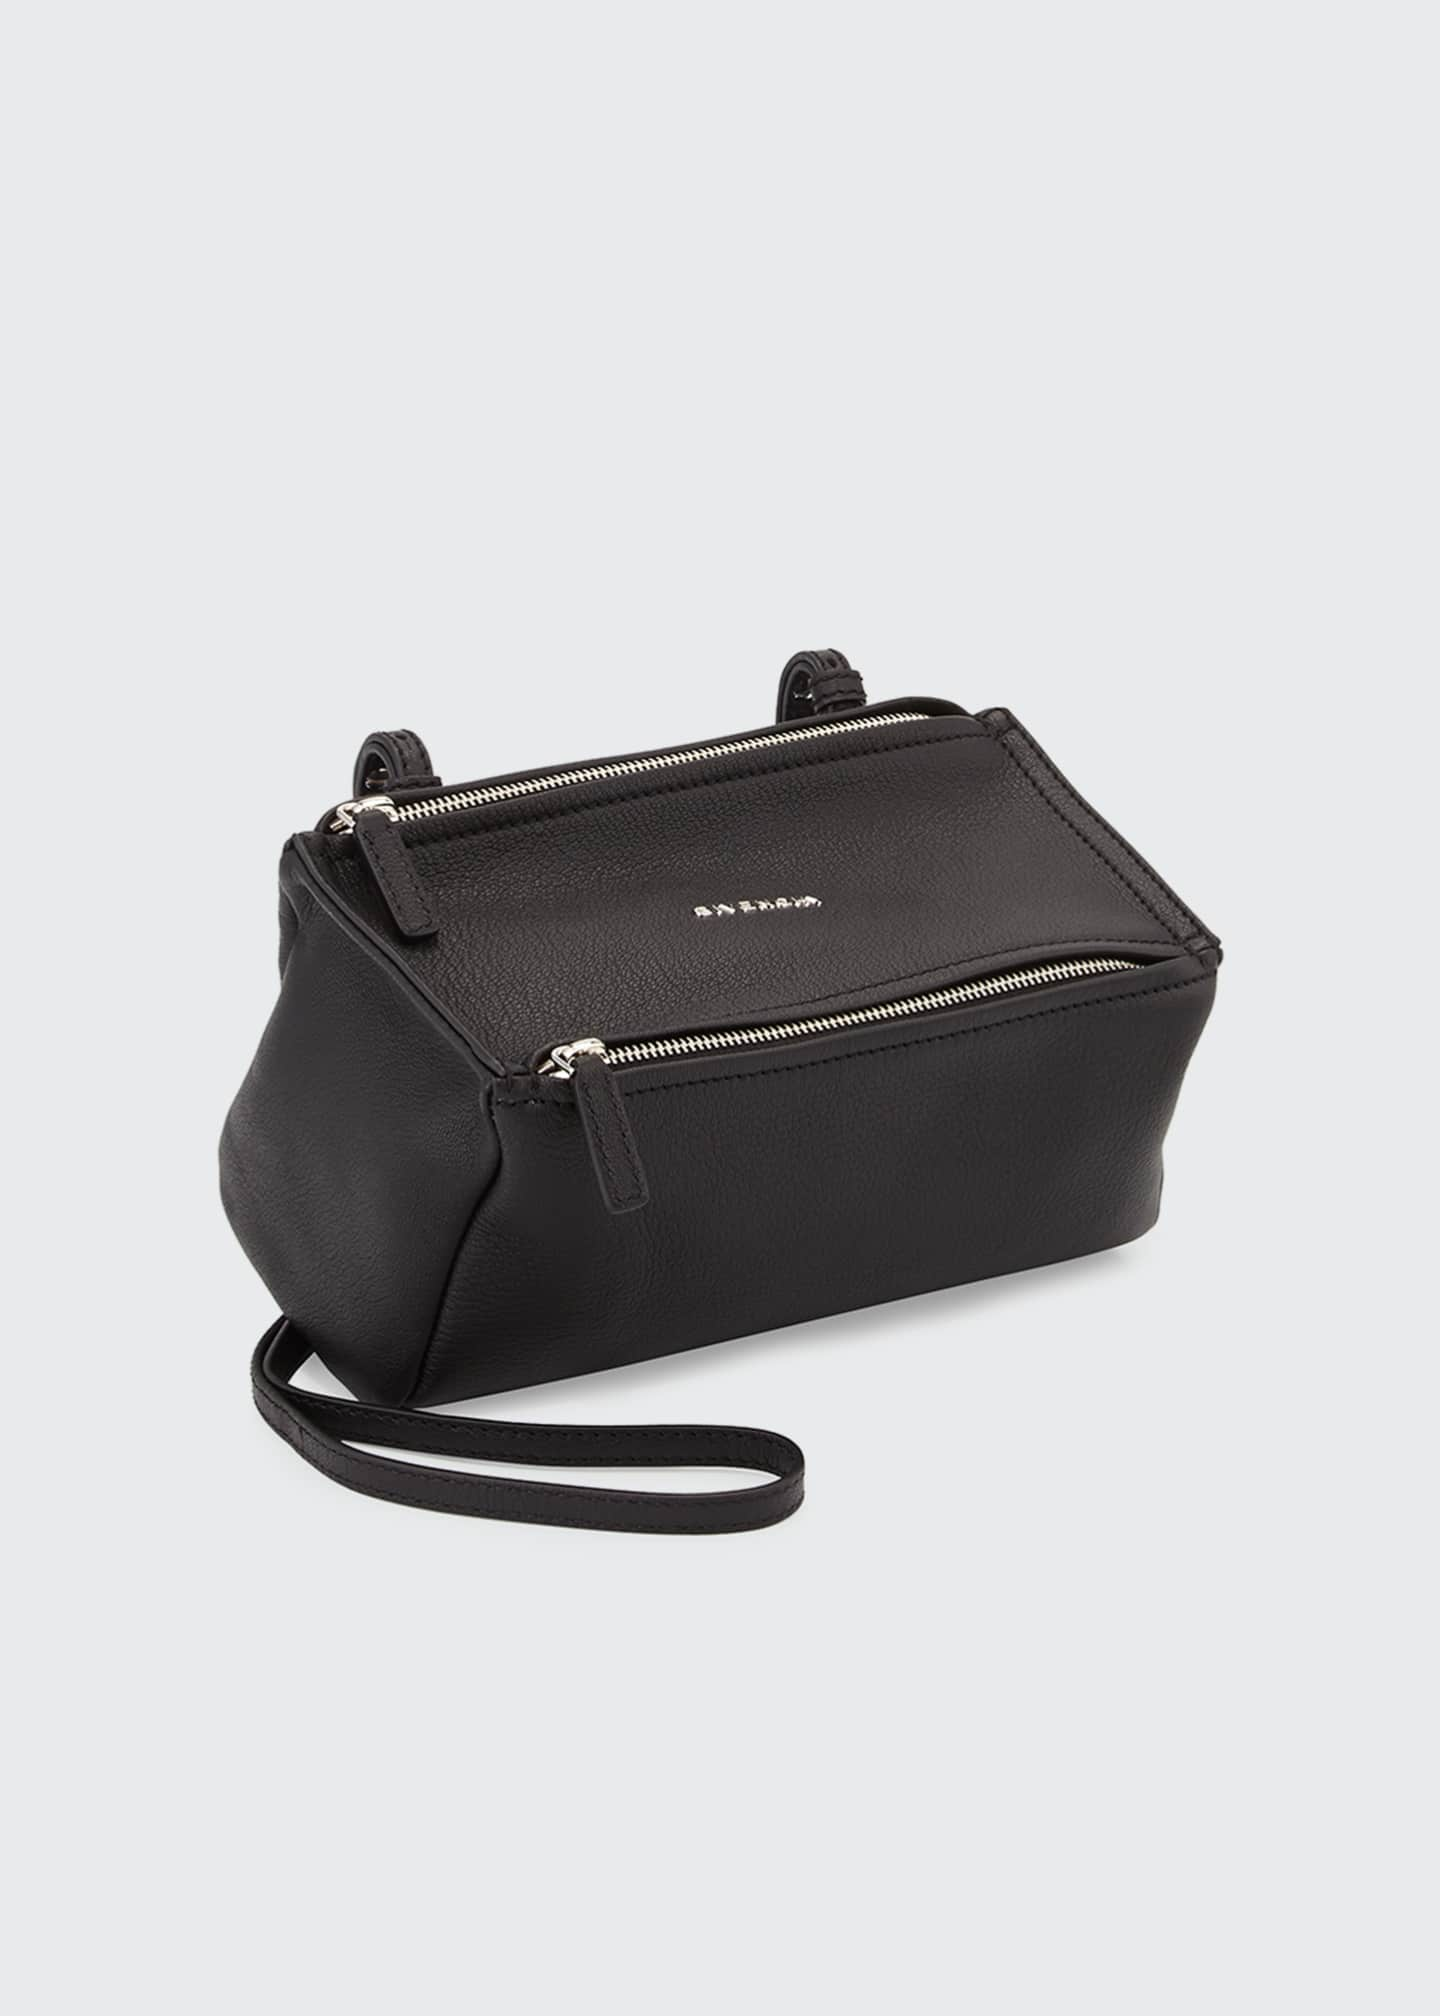 Image 1 of 5: Pandora Mini Sugar Crossbody Bag